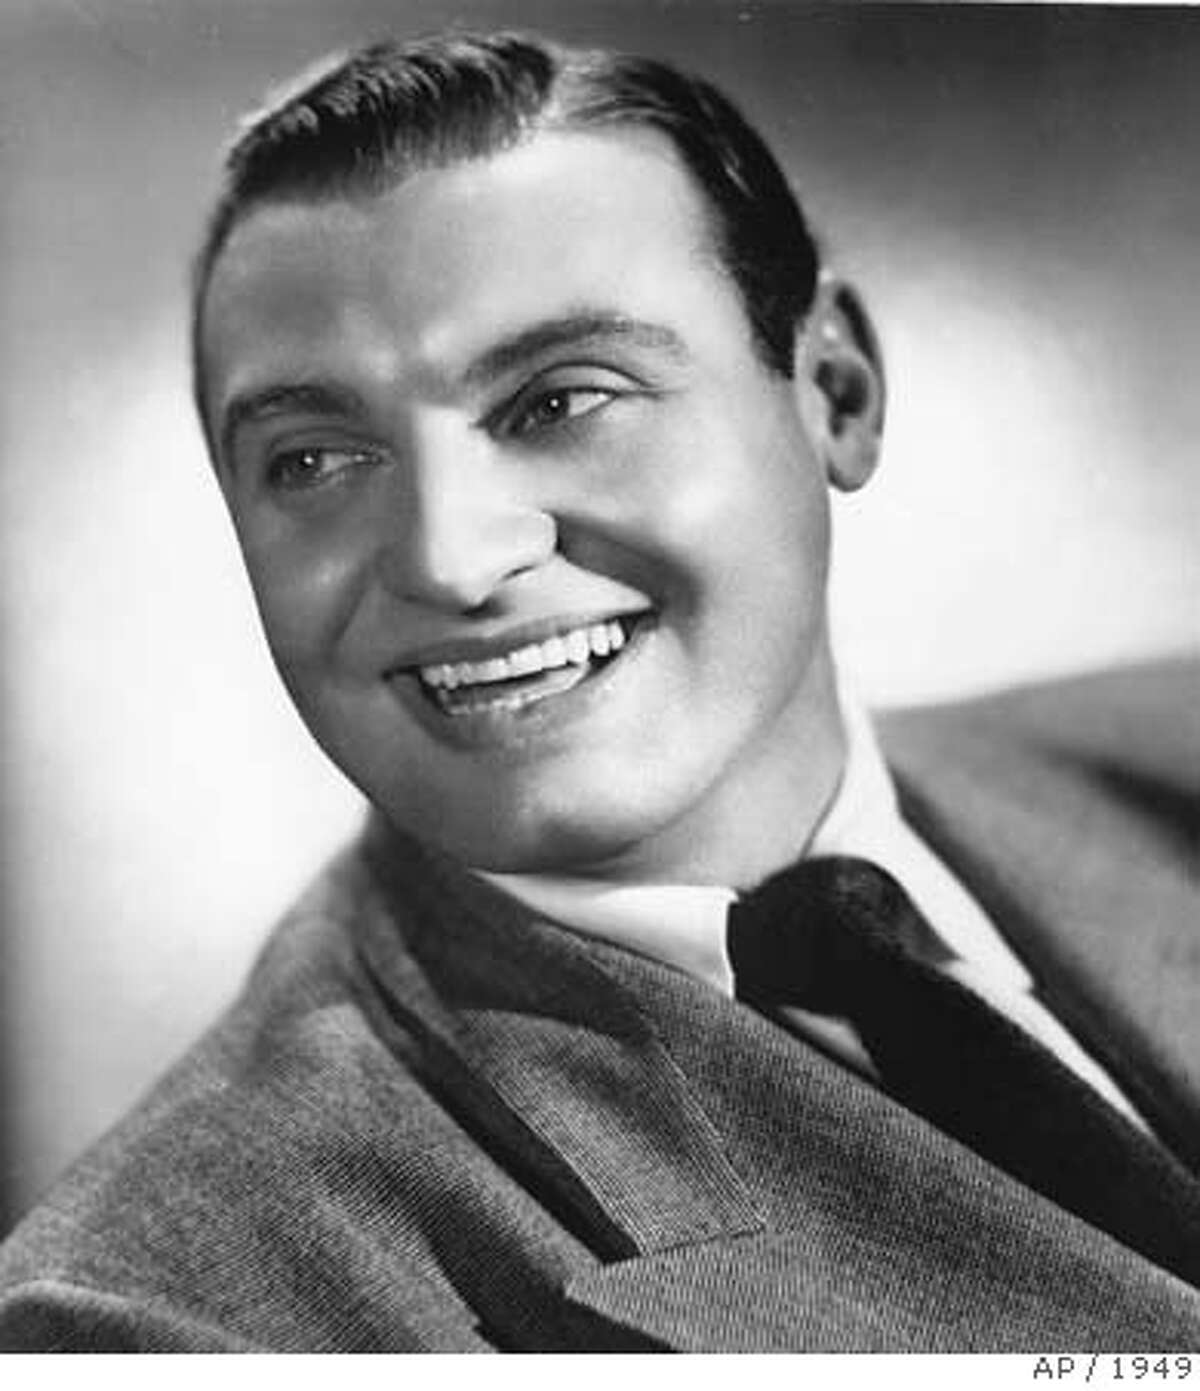 ** FILE ** Singer Frankie Laine is seen in this November 1949 file photo provided by General Artists Corporation. Laine, the big-voiced singer whose string of hits made him one of the most popular entertainers of the 1950s, died Tuesday, Feb. 5, 2007. He was 93. (AP Photo) NOVEMBER 1949 FILE PHOTO PROVIDED BY GENERAL ARTISTS CORPORATION